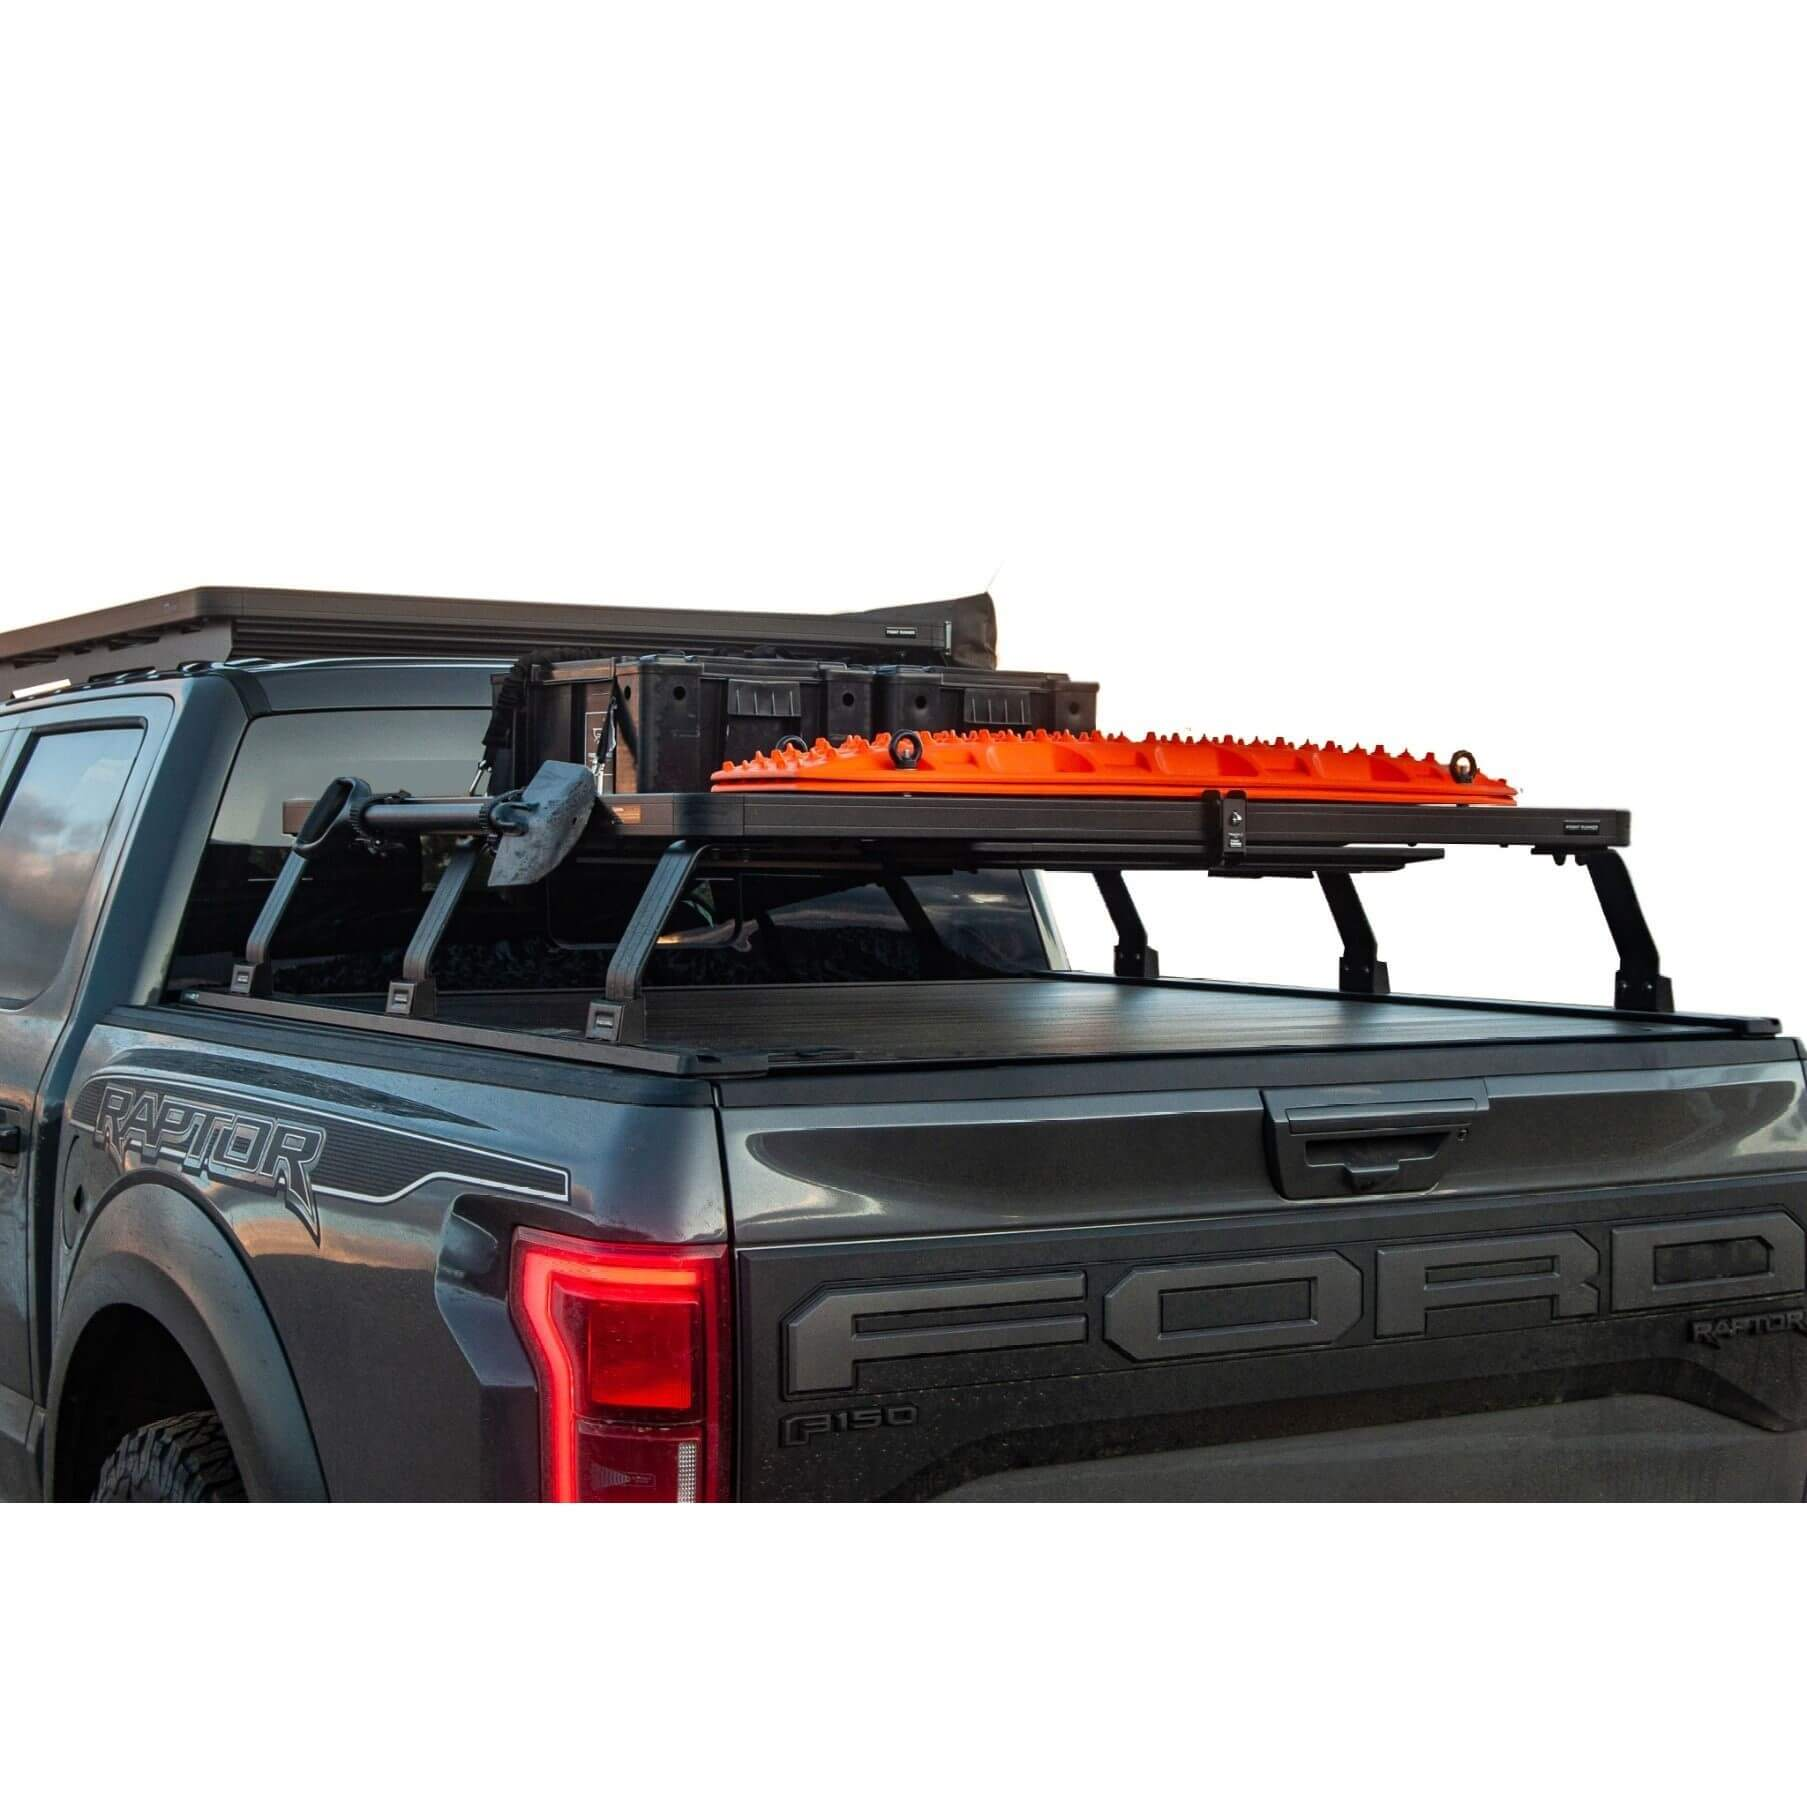 Retrax XR Load Bed Rack Kit Suitable For Ford Raptor 2015 to current